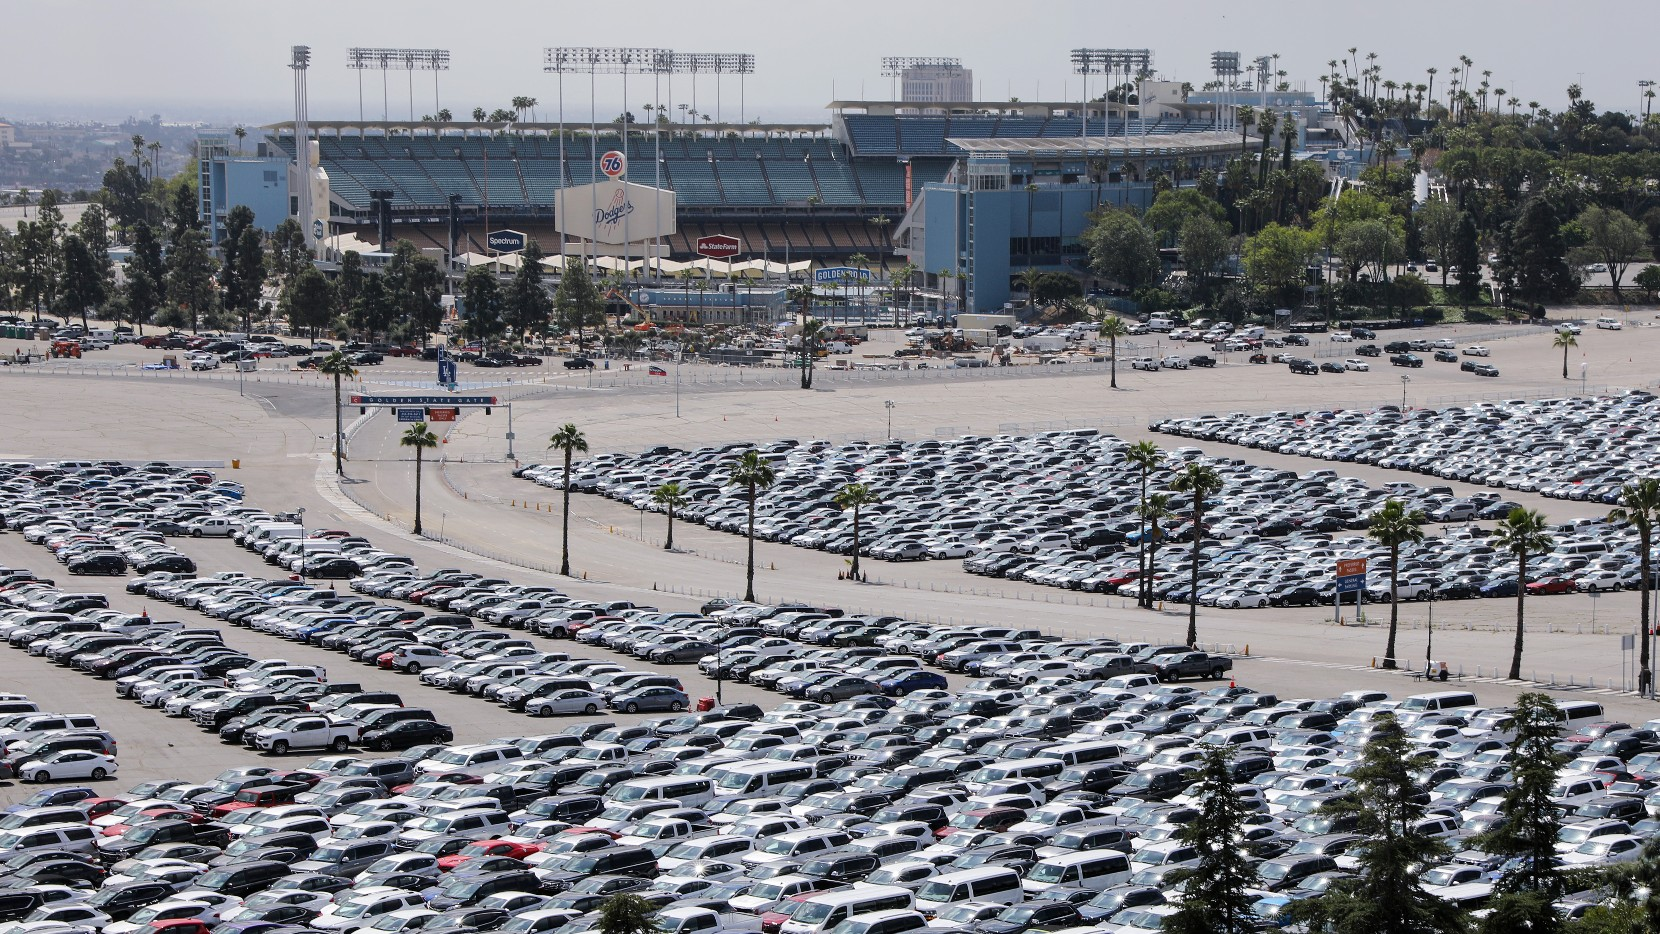 Stationed rental cars are parked in a lot at Dodger Stadium amid the coronavirus pandemic on April 2, 2020 in Los Angeles. (Mario Tama/Getty Images)